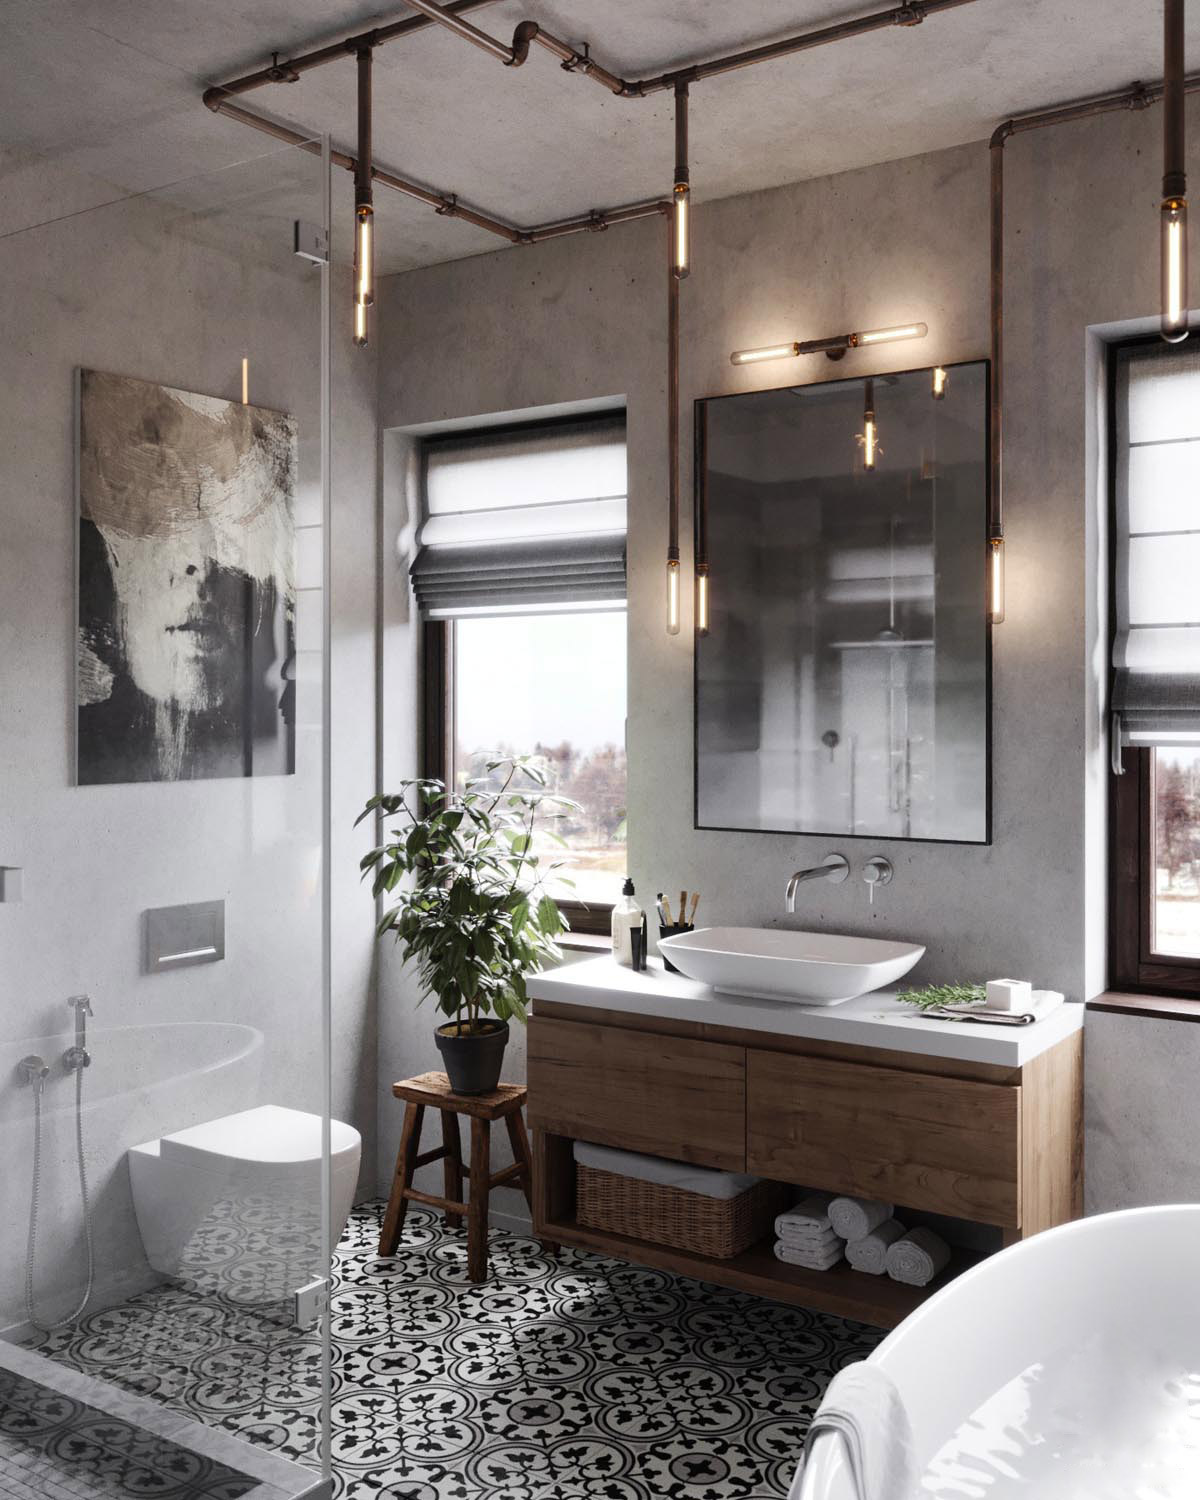 51 industrial style bathrooms plus ideas accessories you for Industrial farmhouse design